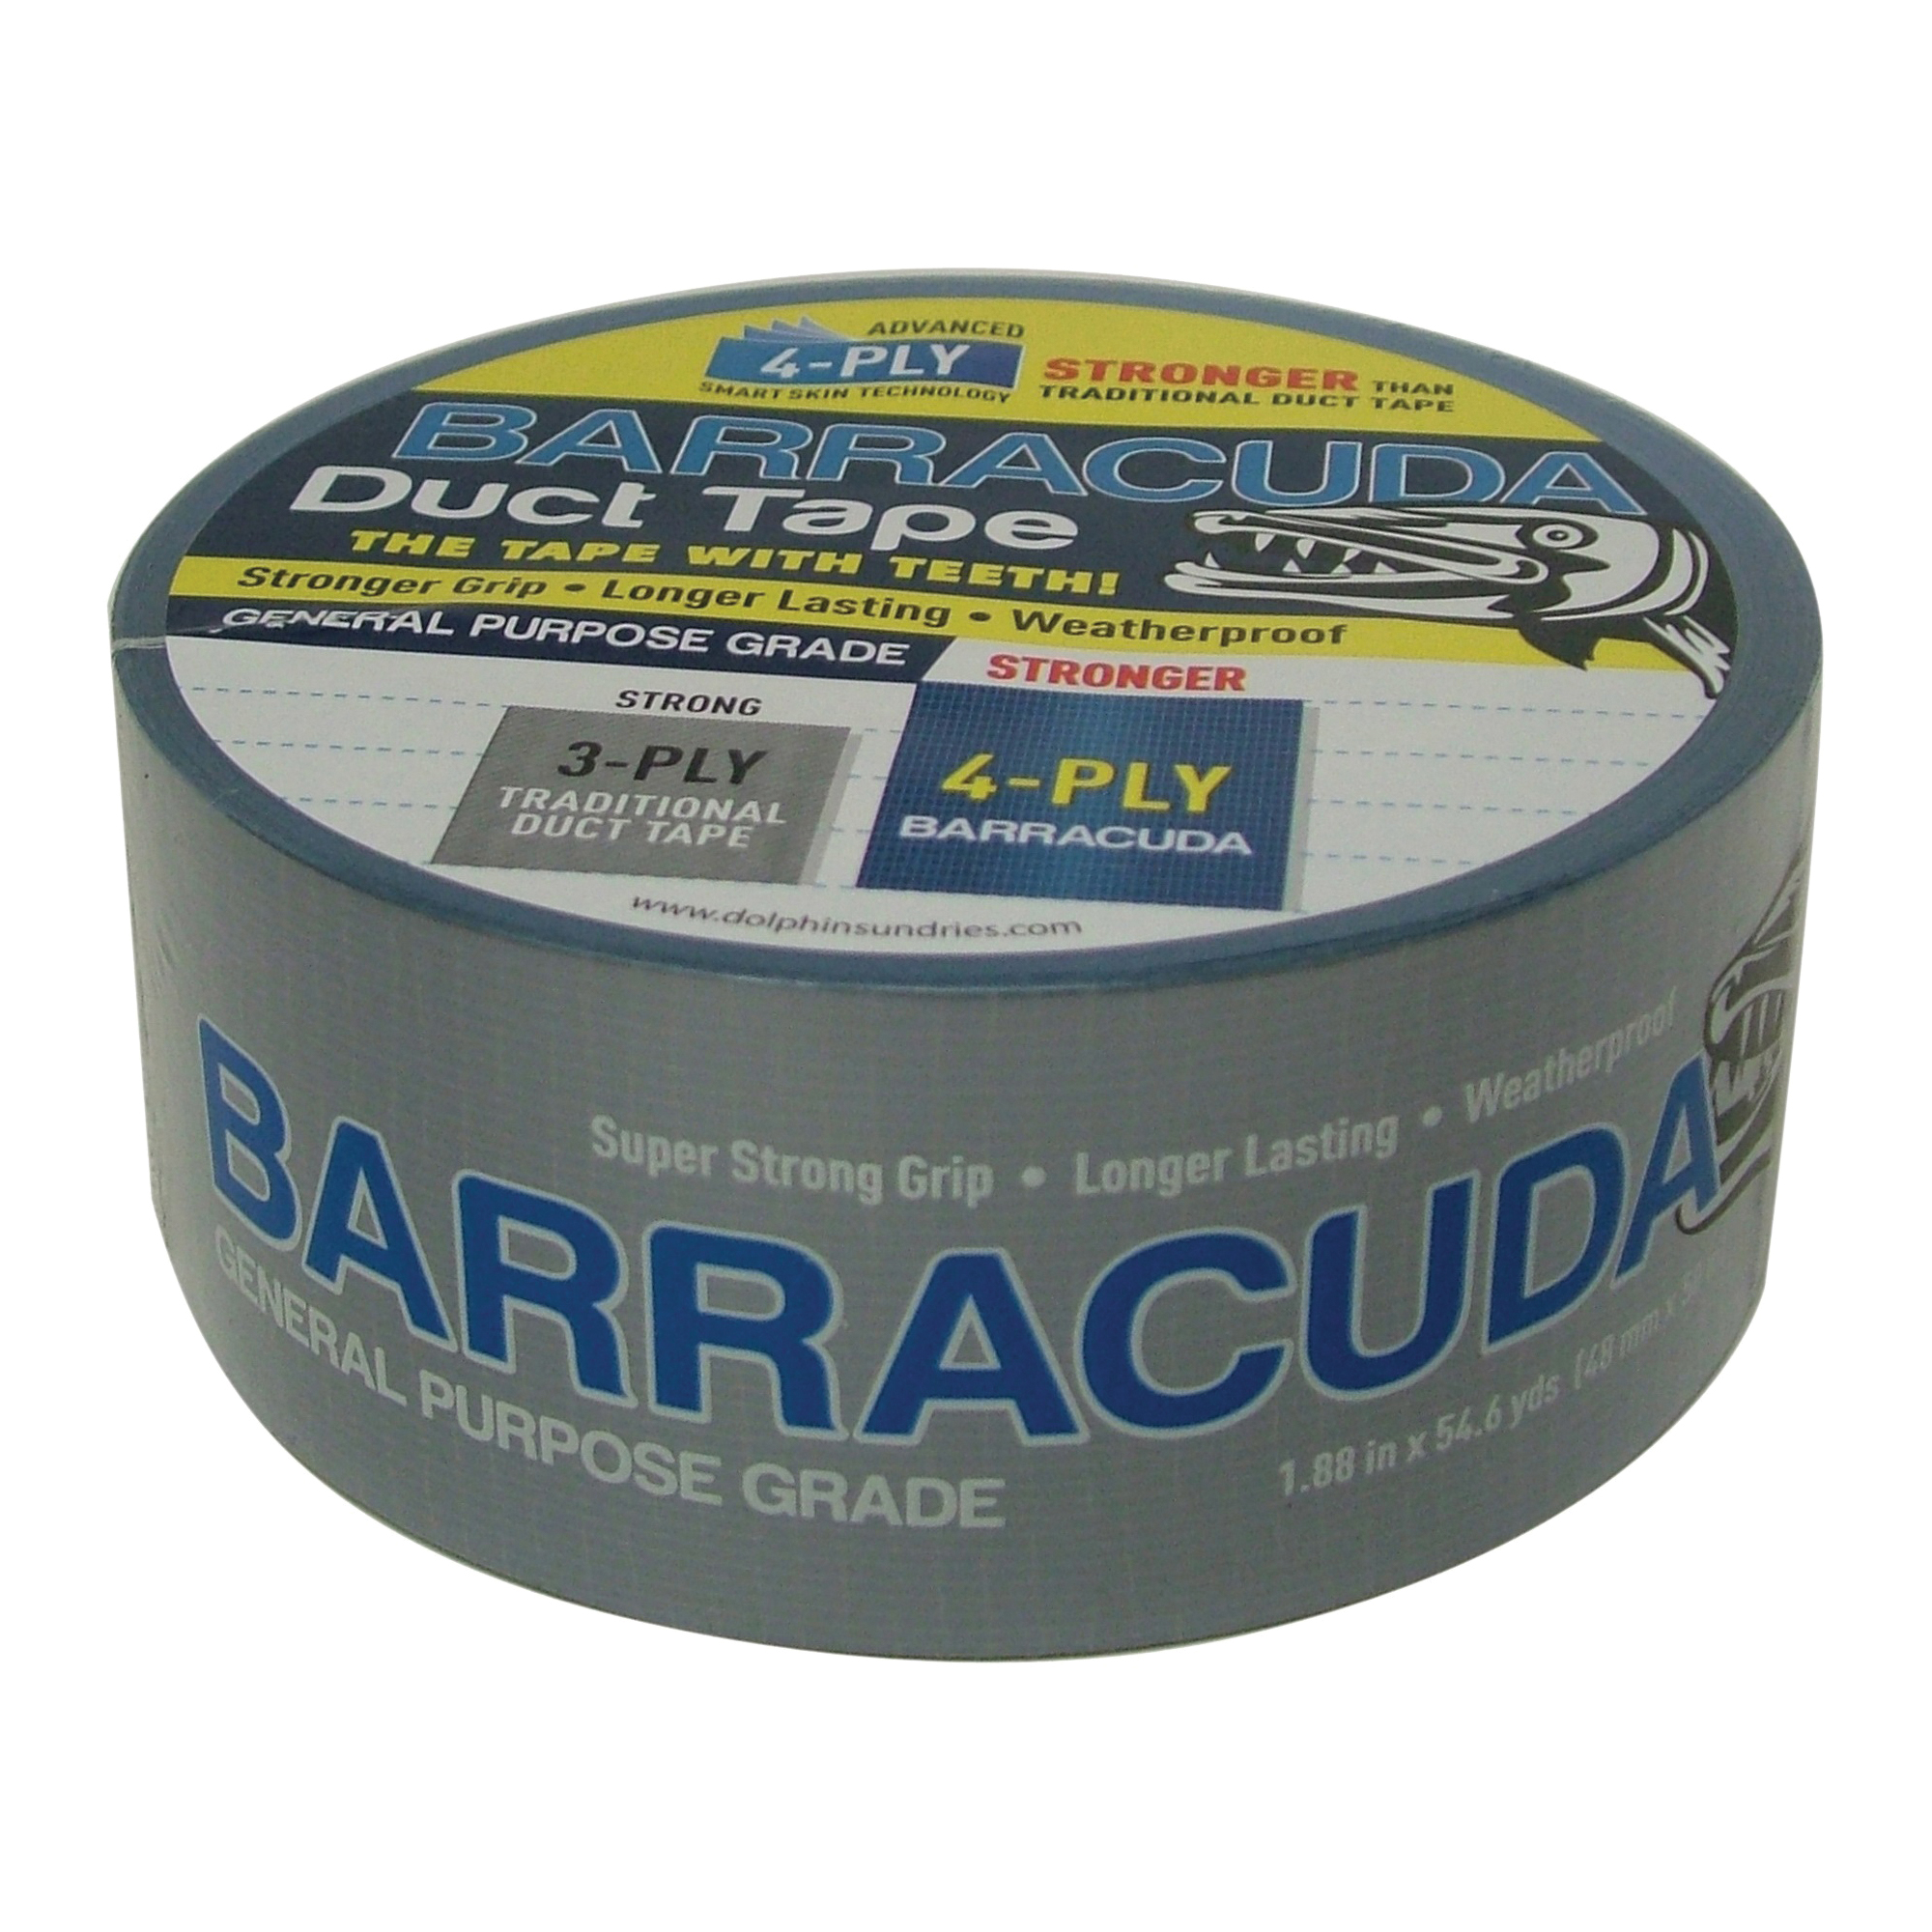 Picture of Barracuda TP DUCT BARA BLU Duct Tape, 54.6 yd L, 1.88 in W, Blue/Silver